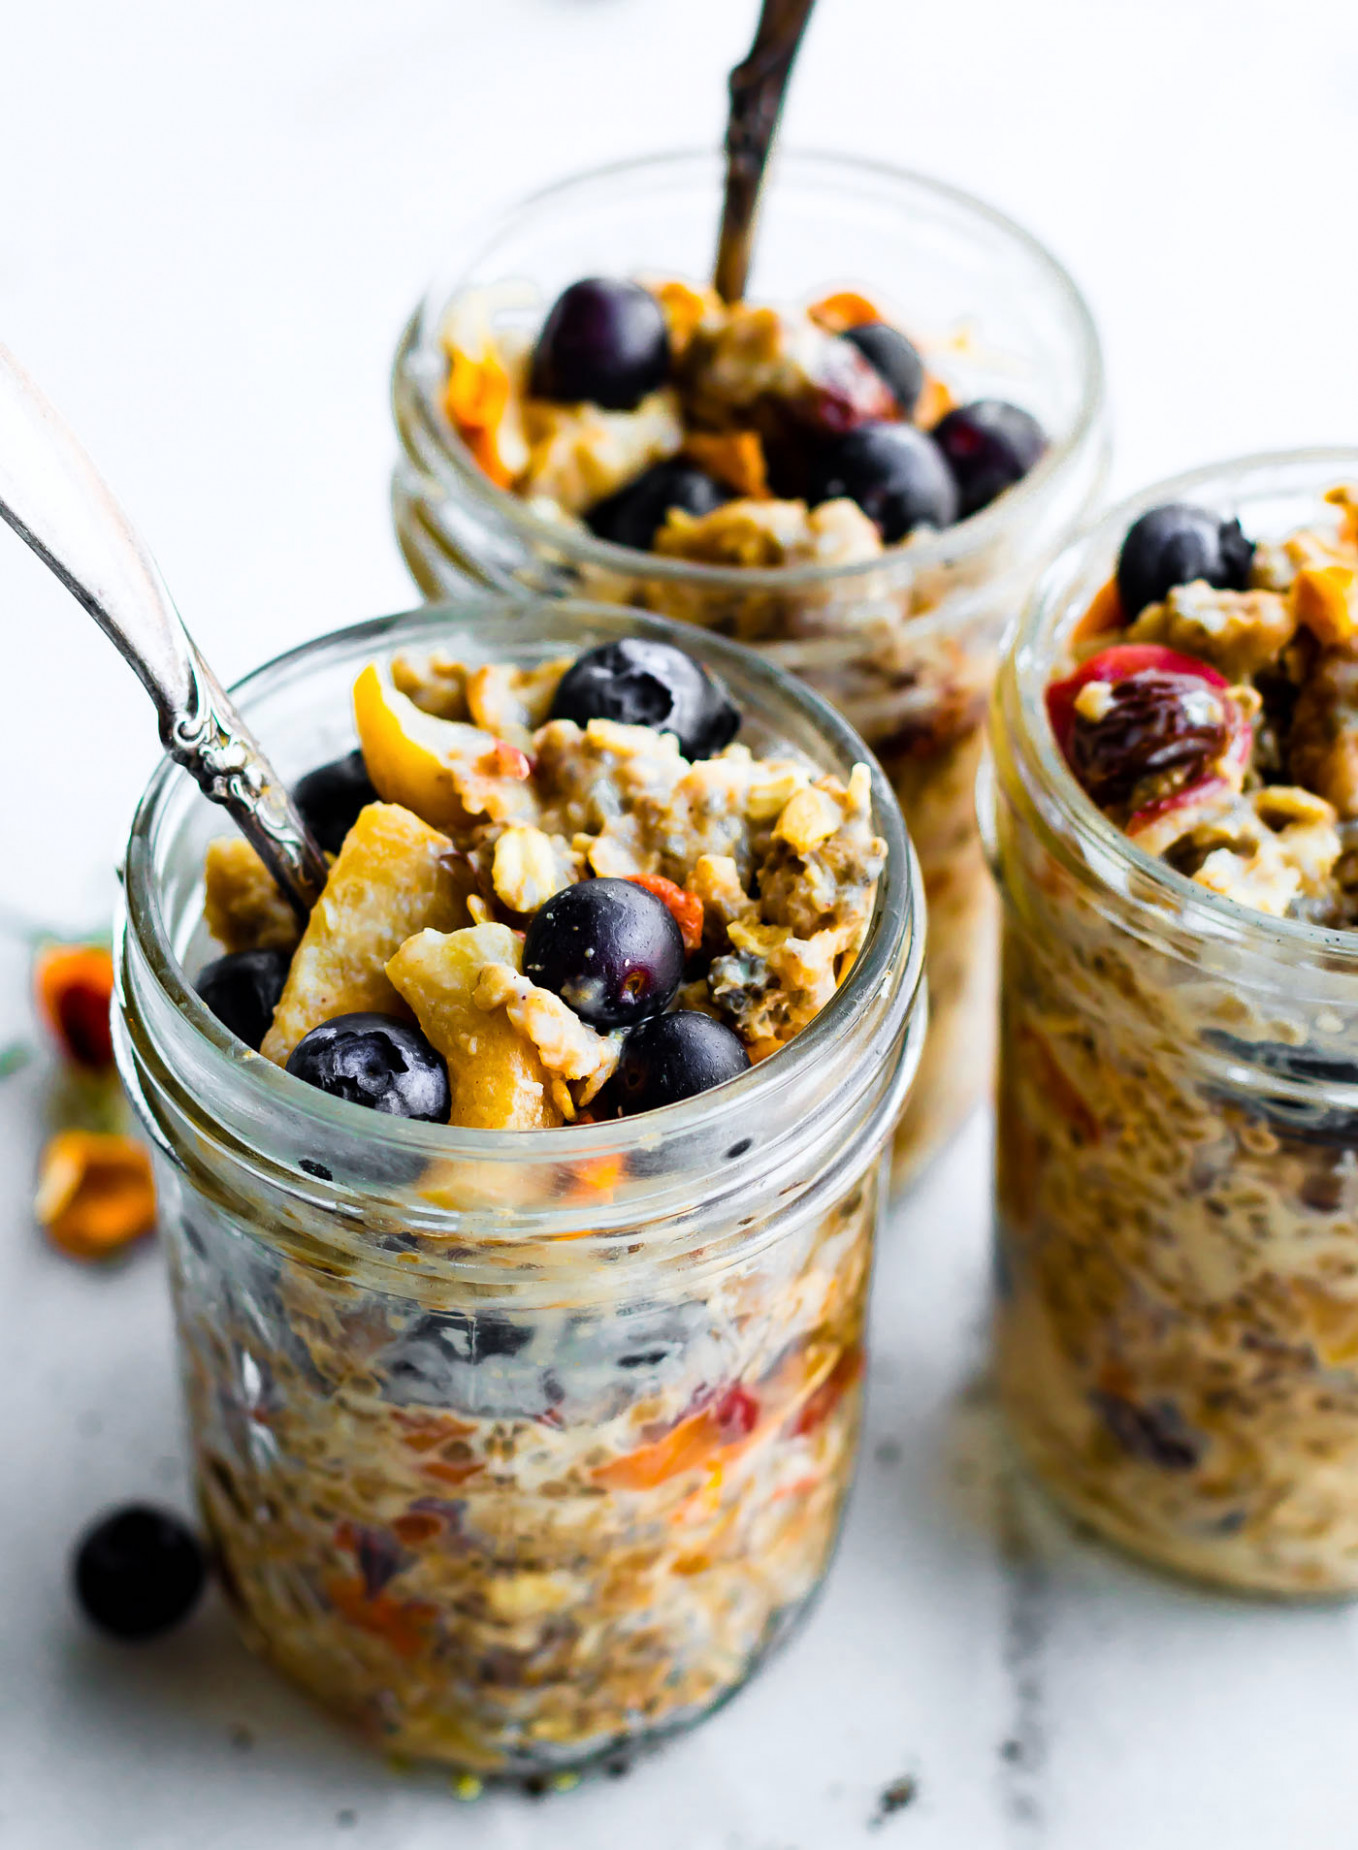 Superfood Instant Pot Oatmeal Jars (Stove top and Slow cooker options) - recipes of healthy breakfast